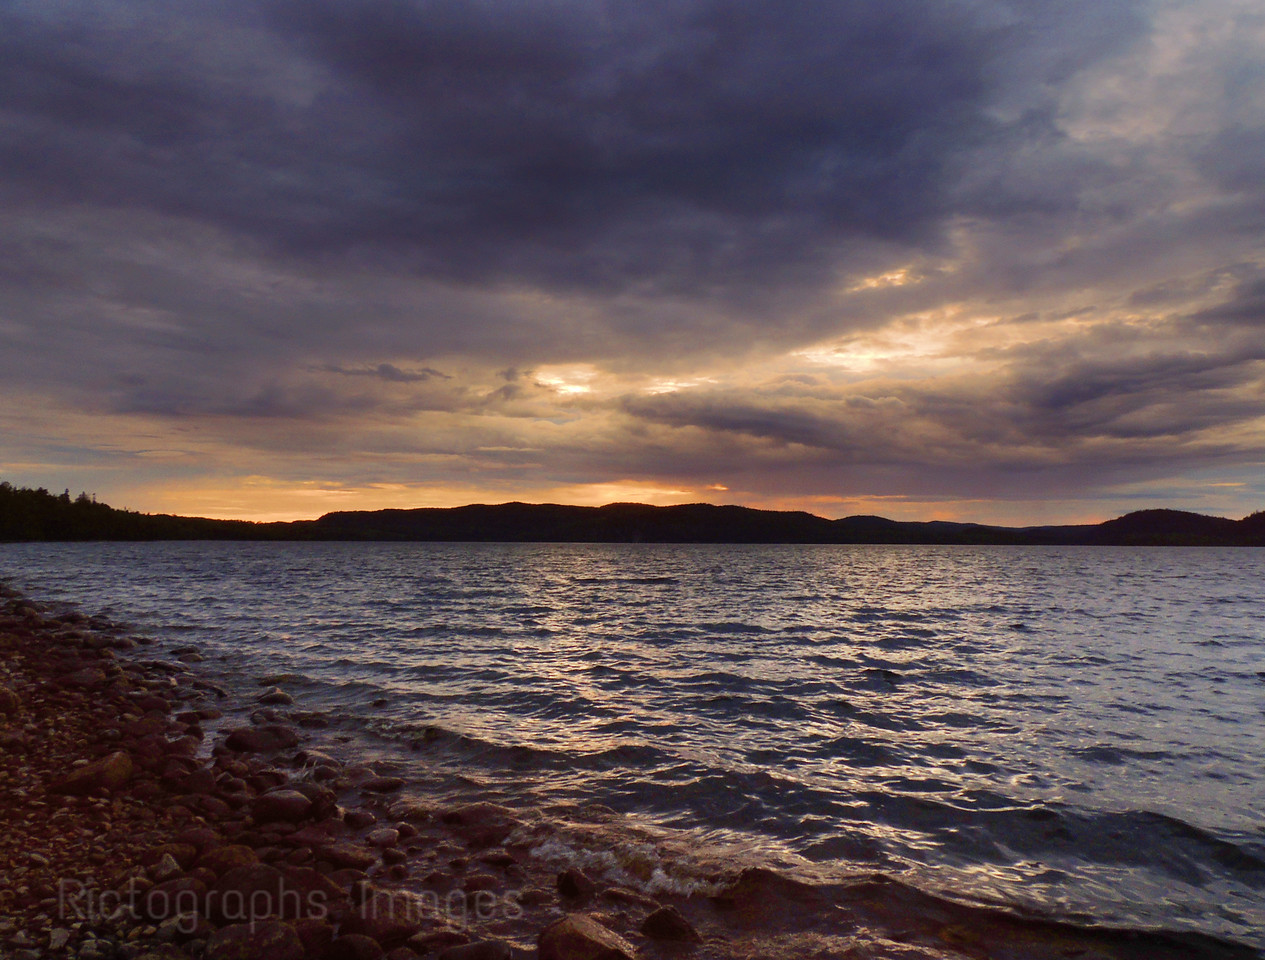 Hayes Lake, Cloudy Day, Rictographs Images